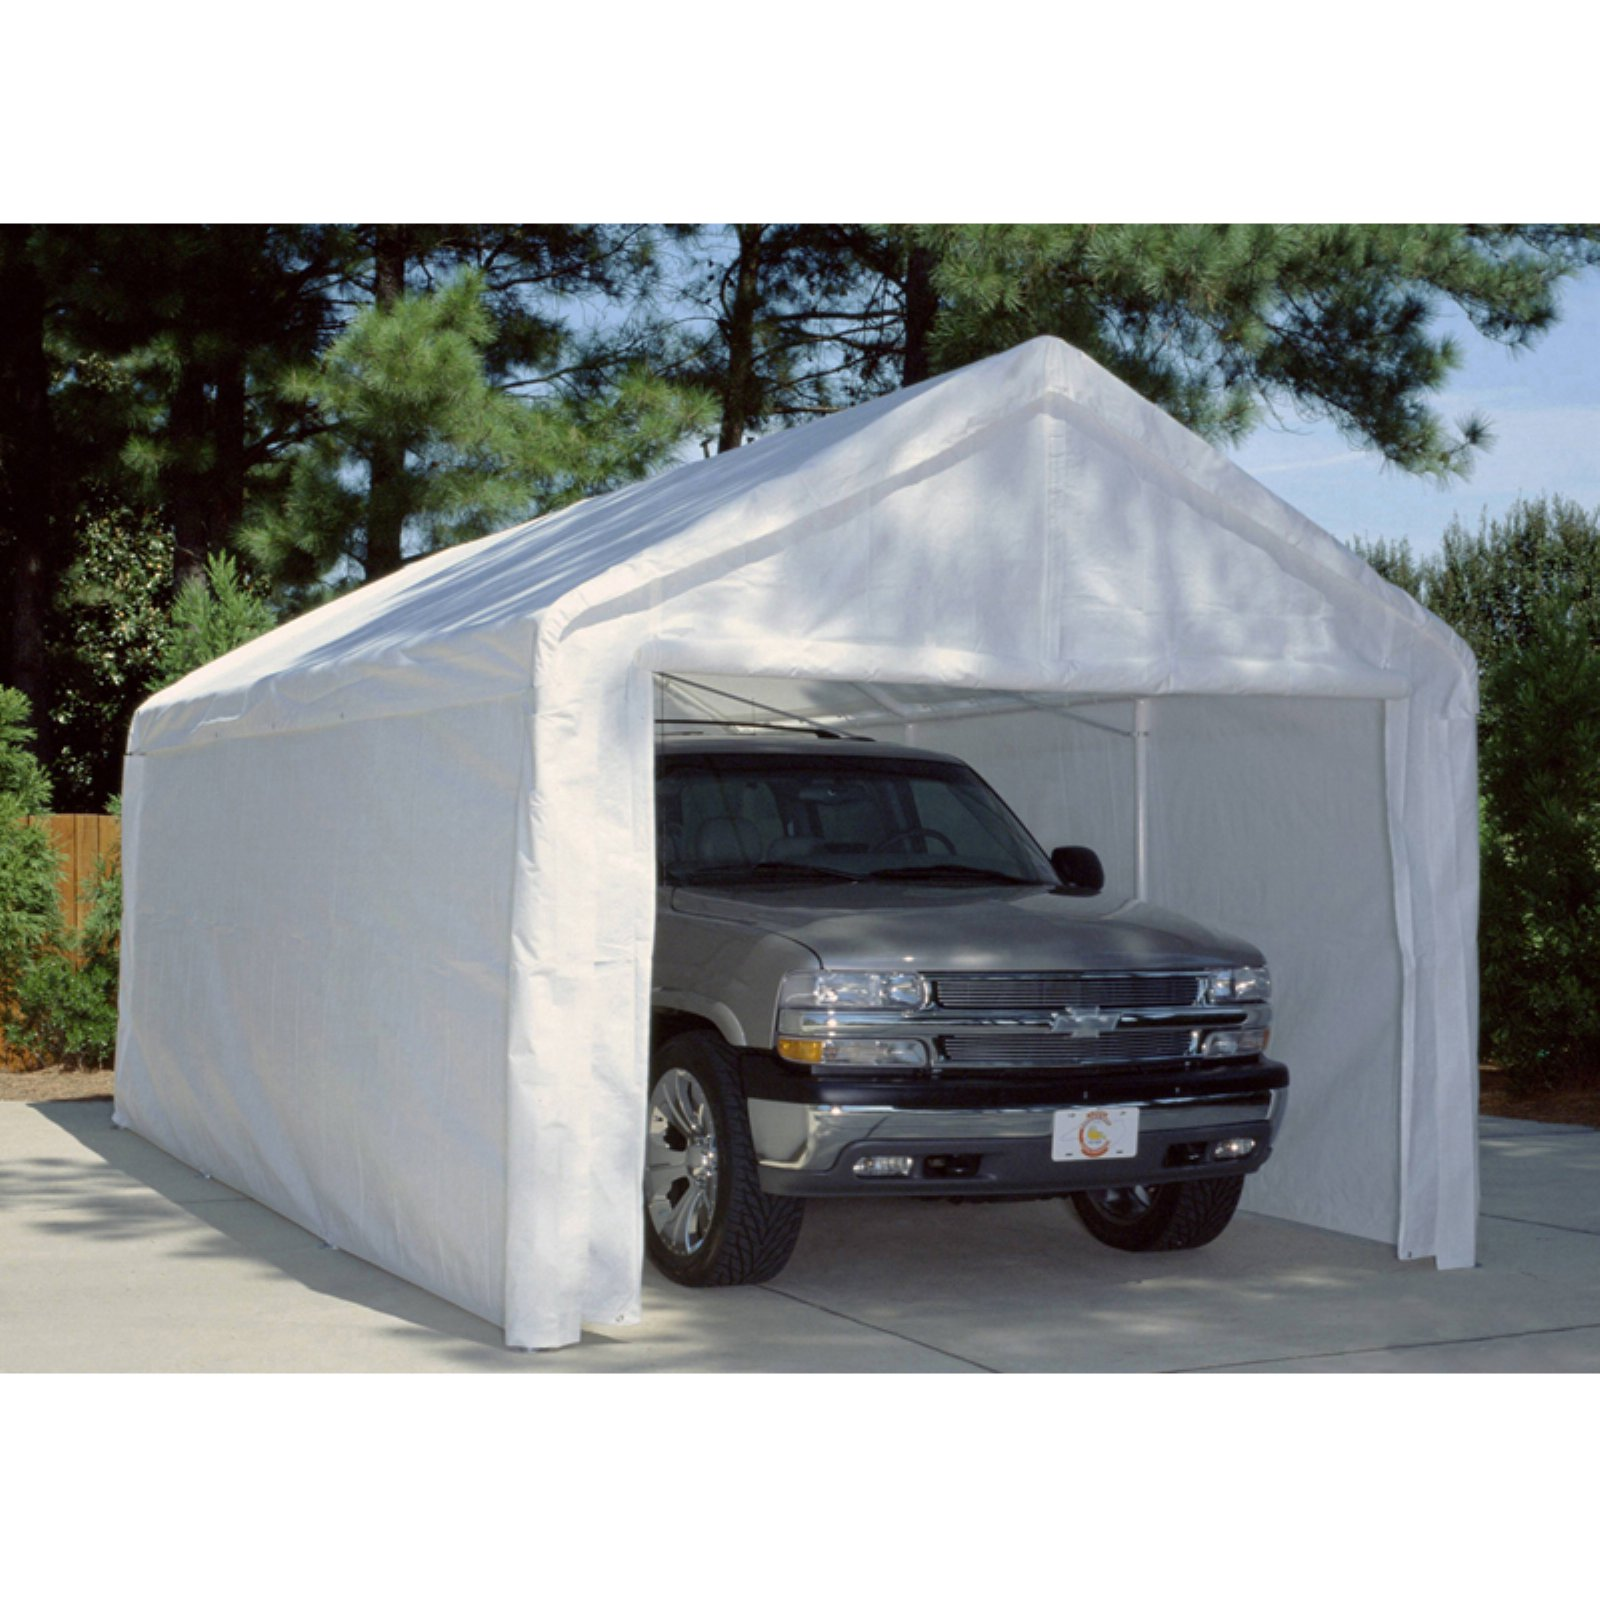 King Canopy White Side Wall Kit with Flaps-10 x 20 ft.